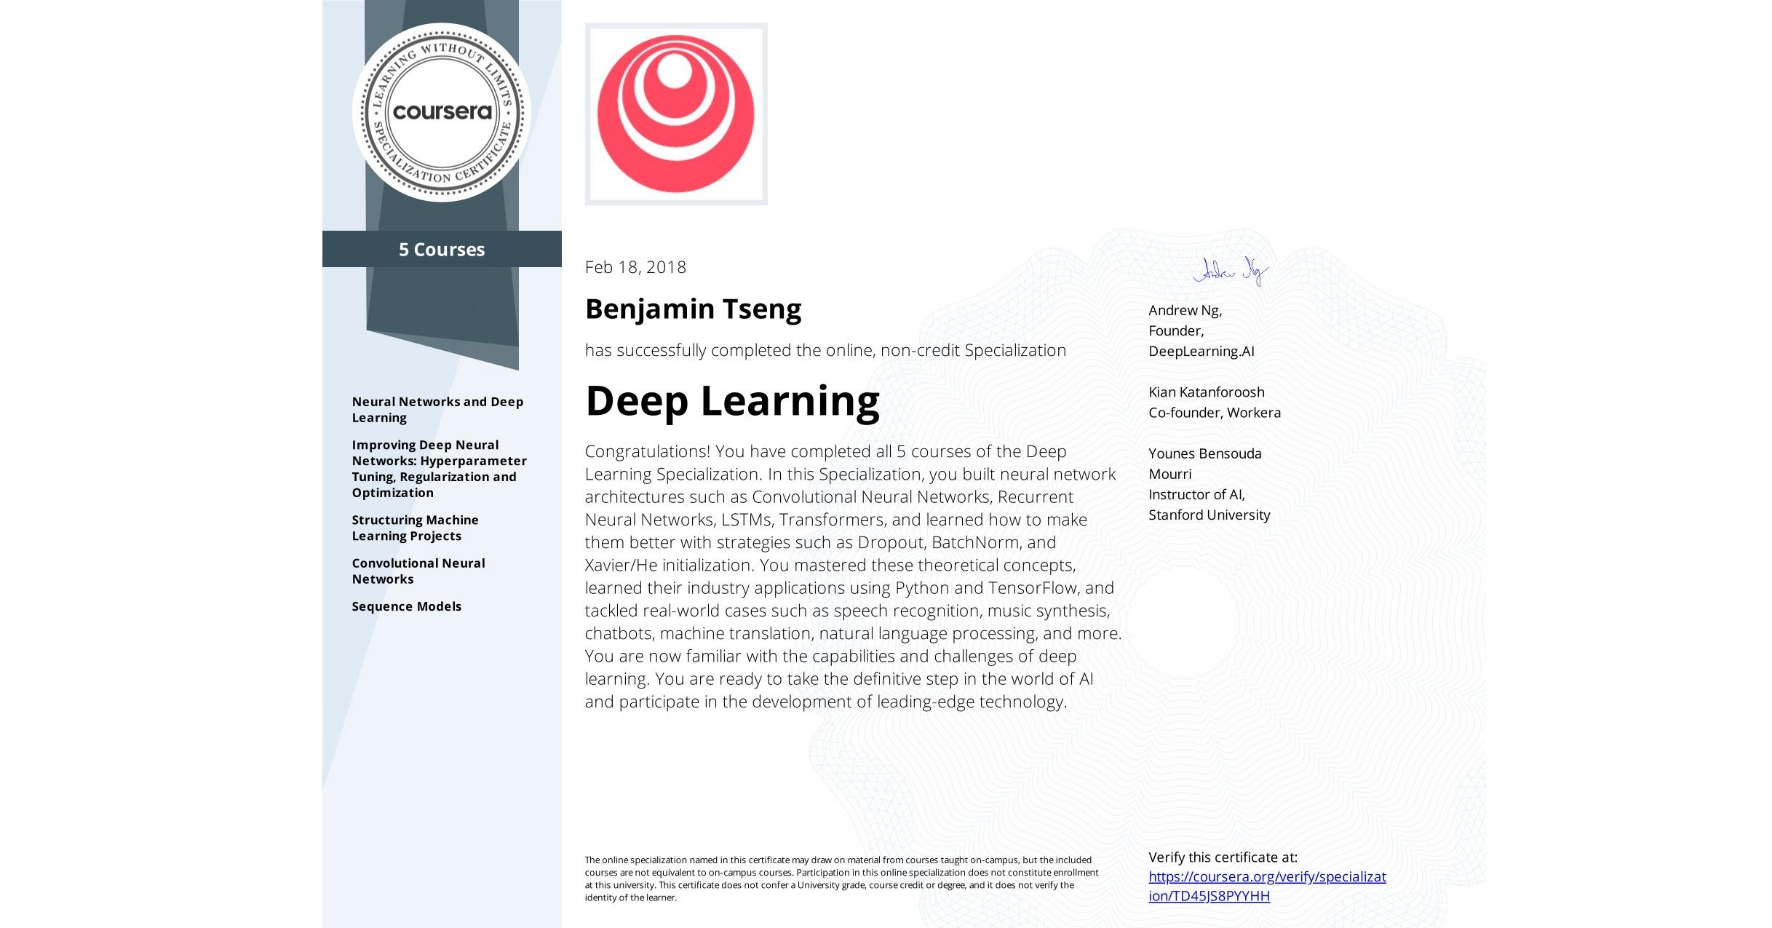 View certificate for Benjamin Tseng, Deep Learning, offered through Coursera. Congratulations! You have completed all 5 courses of the Deep Learning Specialization.  In this Specialization, you built neural network architectures such as Convolutional Neural Networks, Recurrent Neural Networks, LSTMs, Transformers, and learned how to make them better with strategies such as Dropout, BatchNorm, and Xavier/He initialization. You mastered these theoretical concepts, learned their industry applications using Python and TensorFlow, and tackled real-world cases such as speech recognition, music synthesis, chatbots, machine translation, natural language processing, and more.  You are now familiar with the capabilities and challenges of deep learning. You are ready to take the definitive step in the world of AI and participate in the development of leading-edge technology.